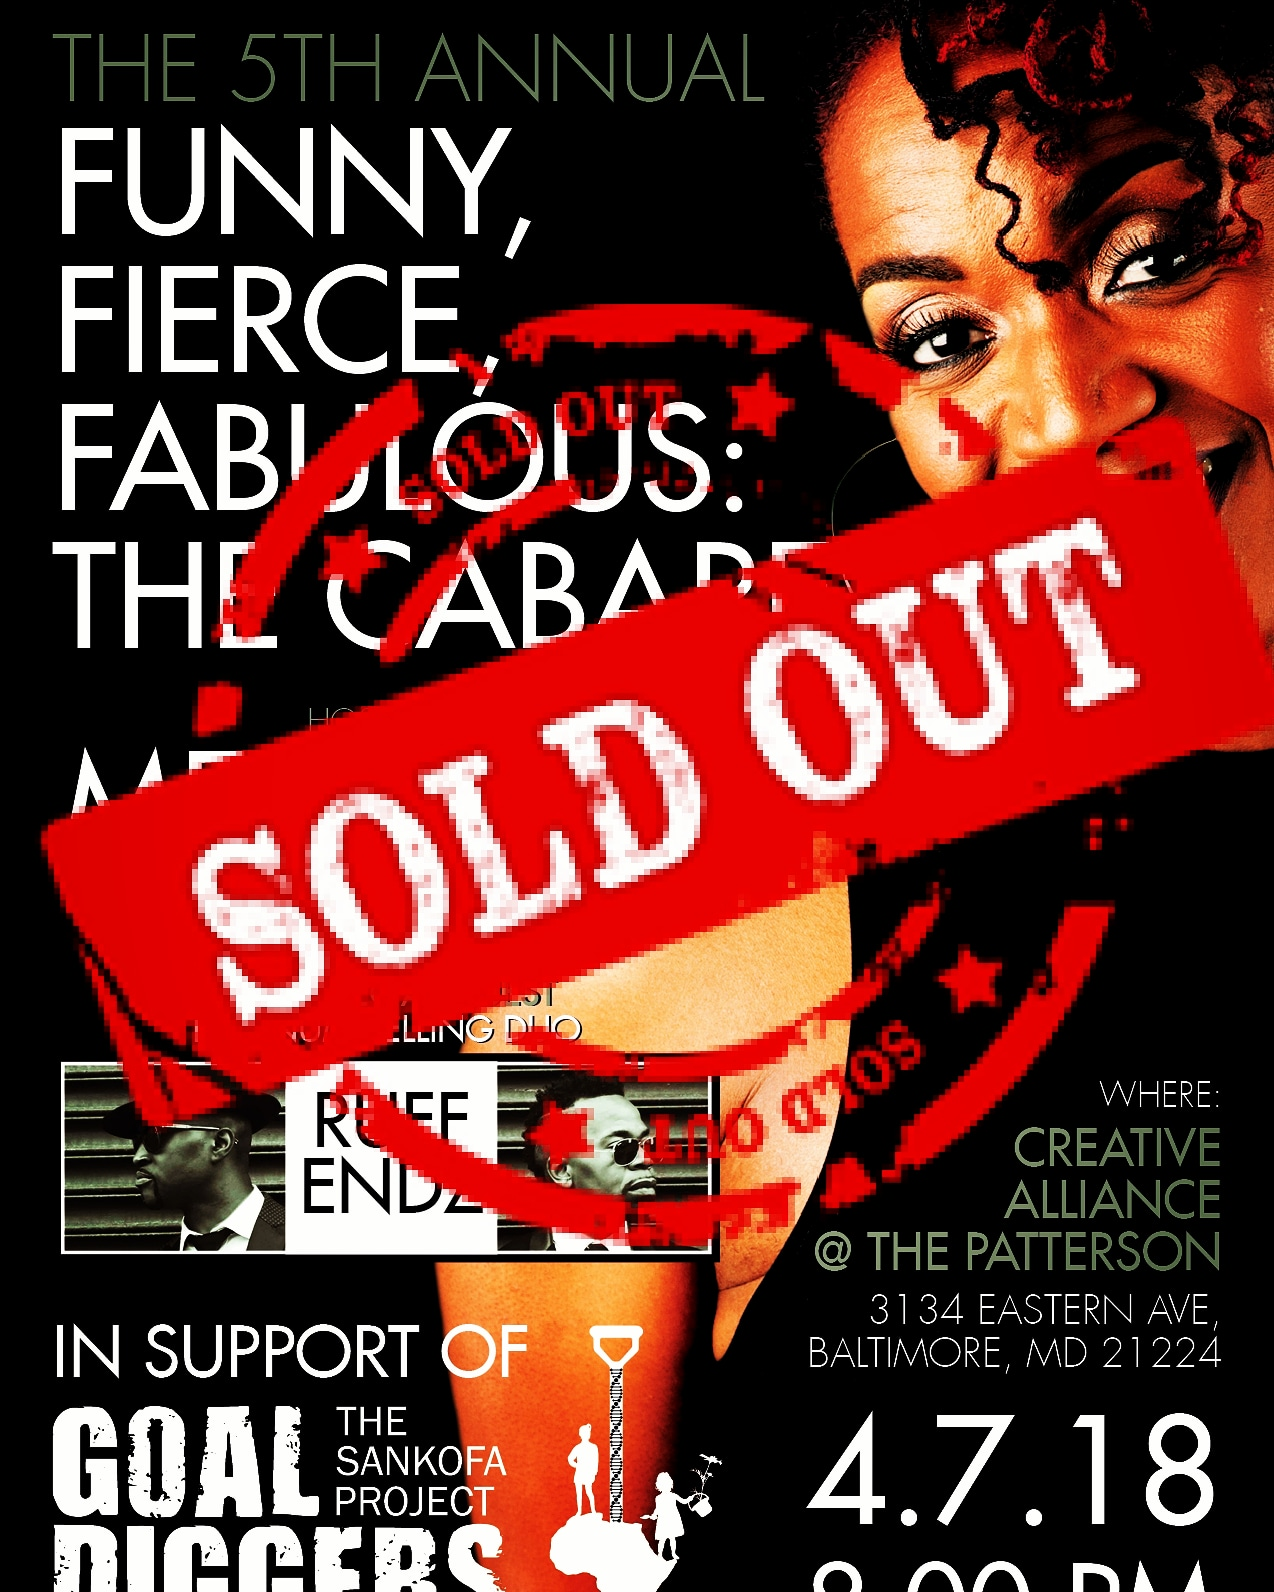 Funny, Fierce, Fabulous: THE CABARET [SOLD OUT] @ Creative Alliance